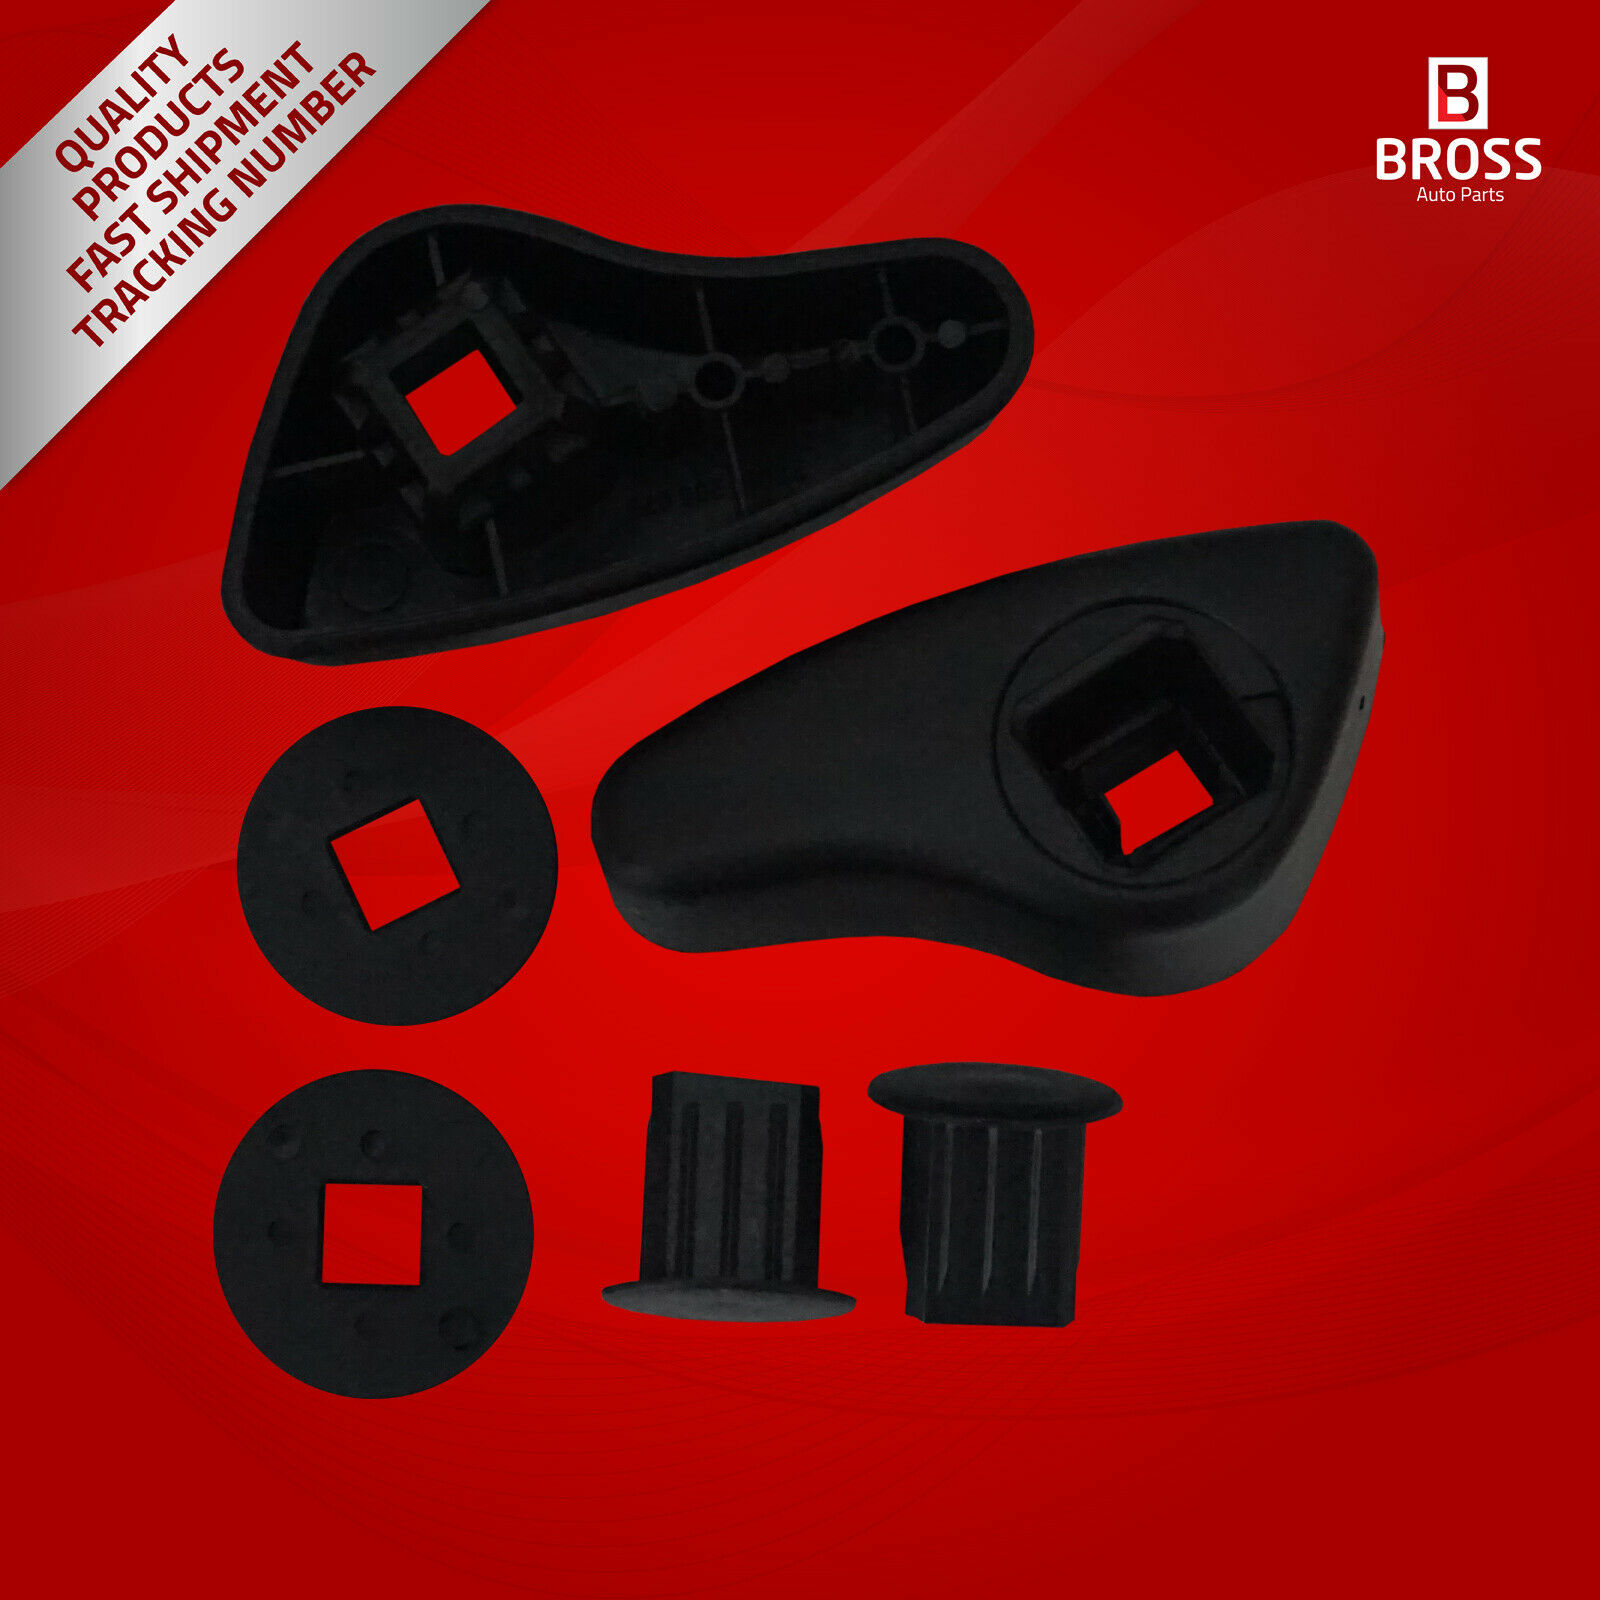 BDP621 Seat Handle Adjustment Grip Lever 7701205078-7701205079 Front Left And Right For Megane MK1; Kangoo MK1; Trafic MK2